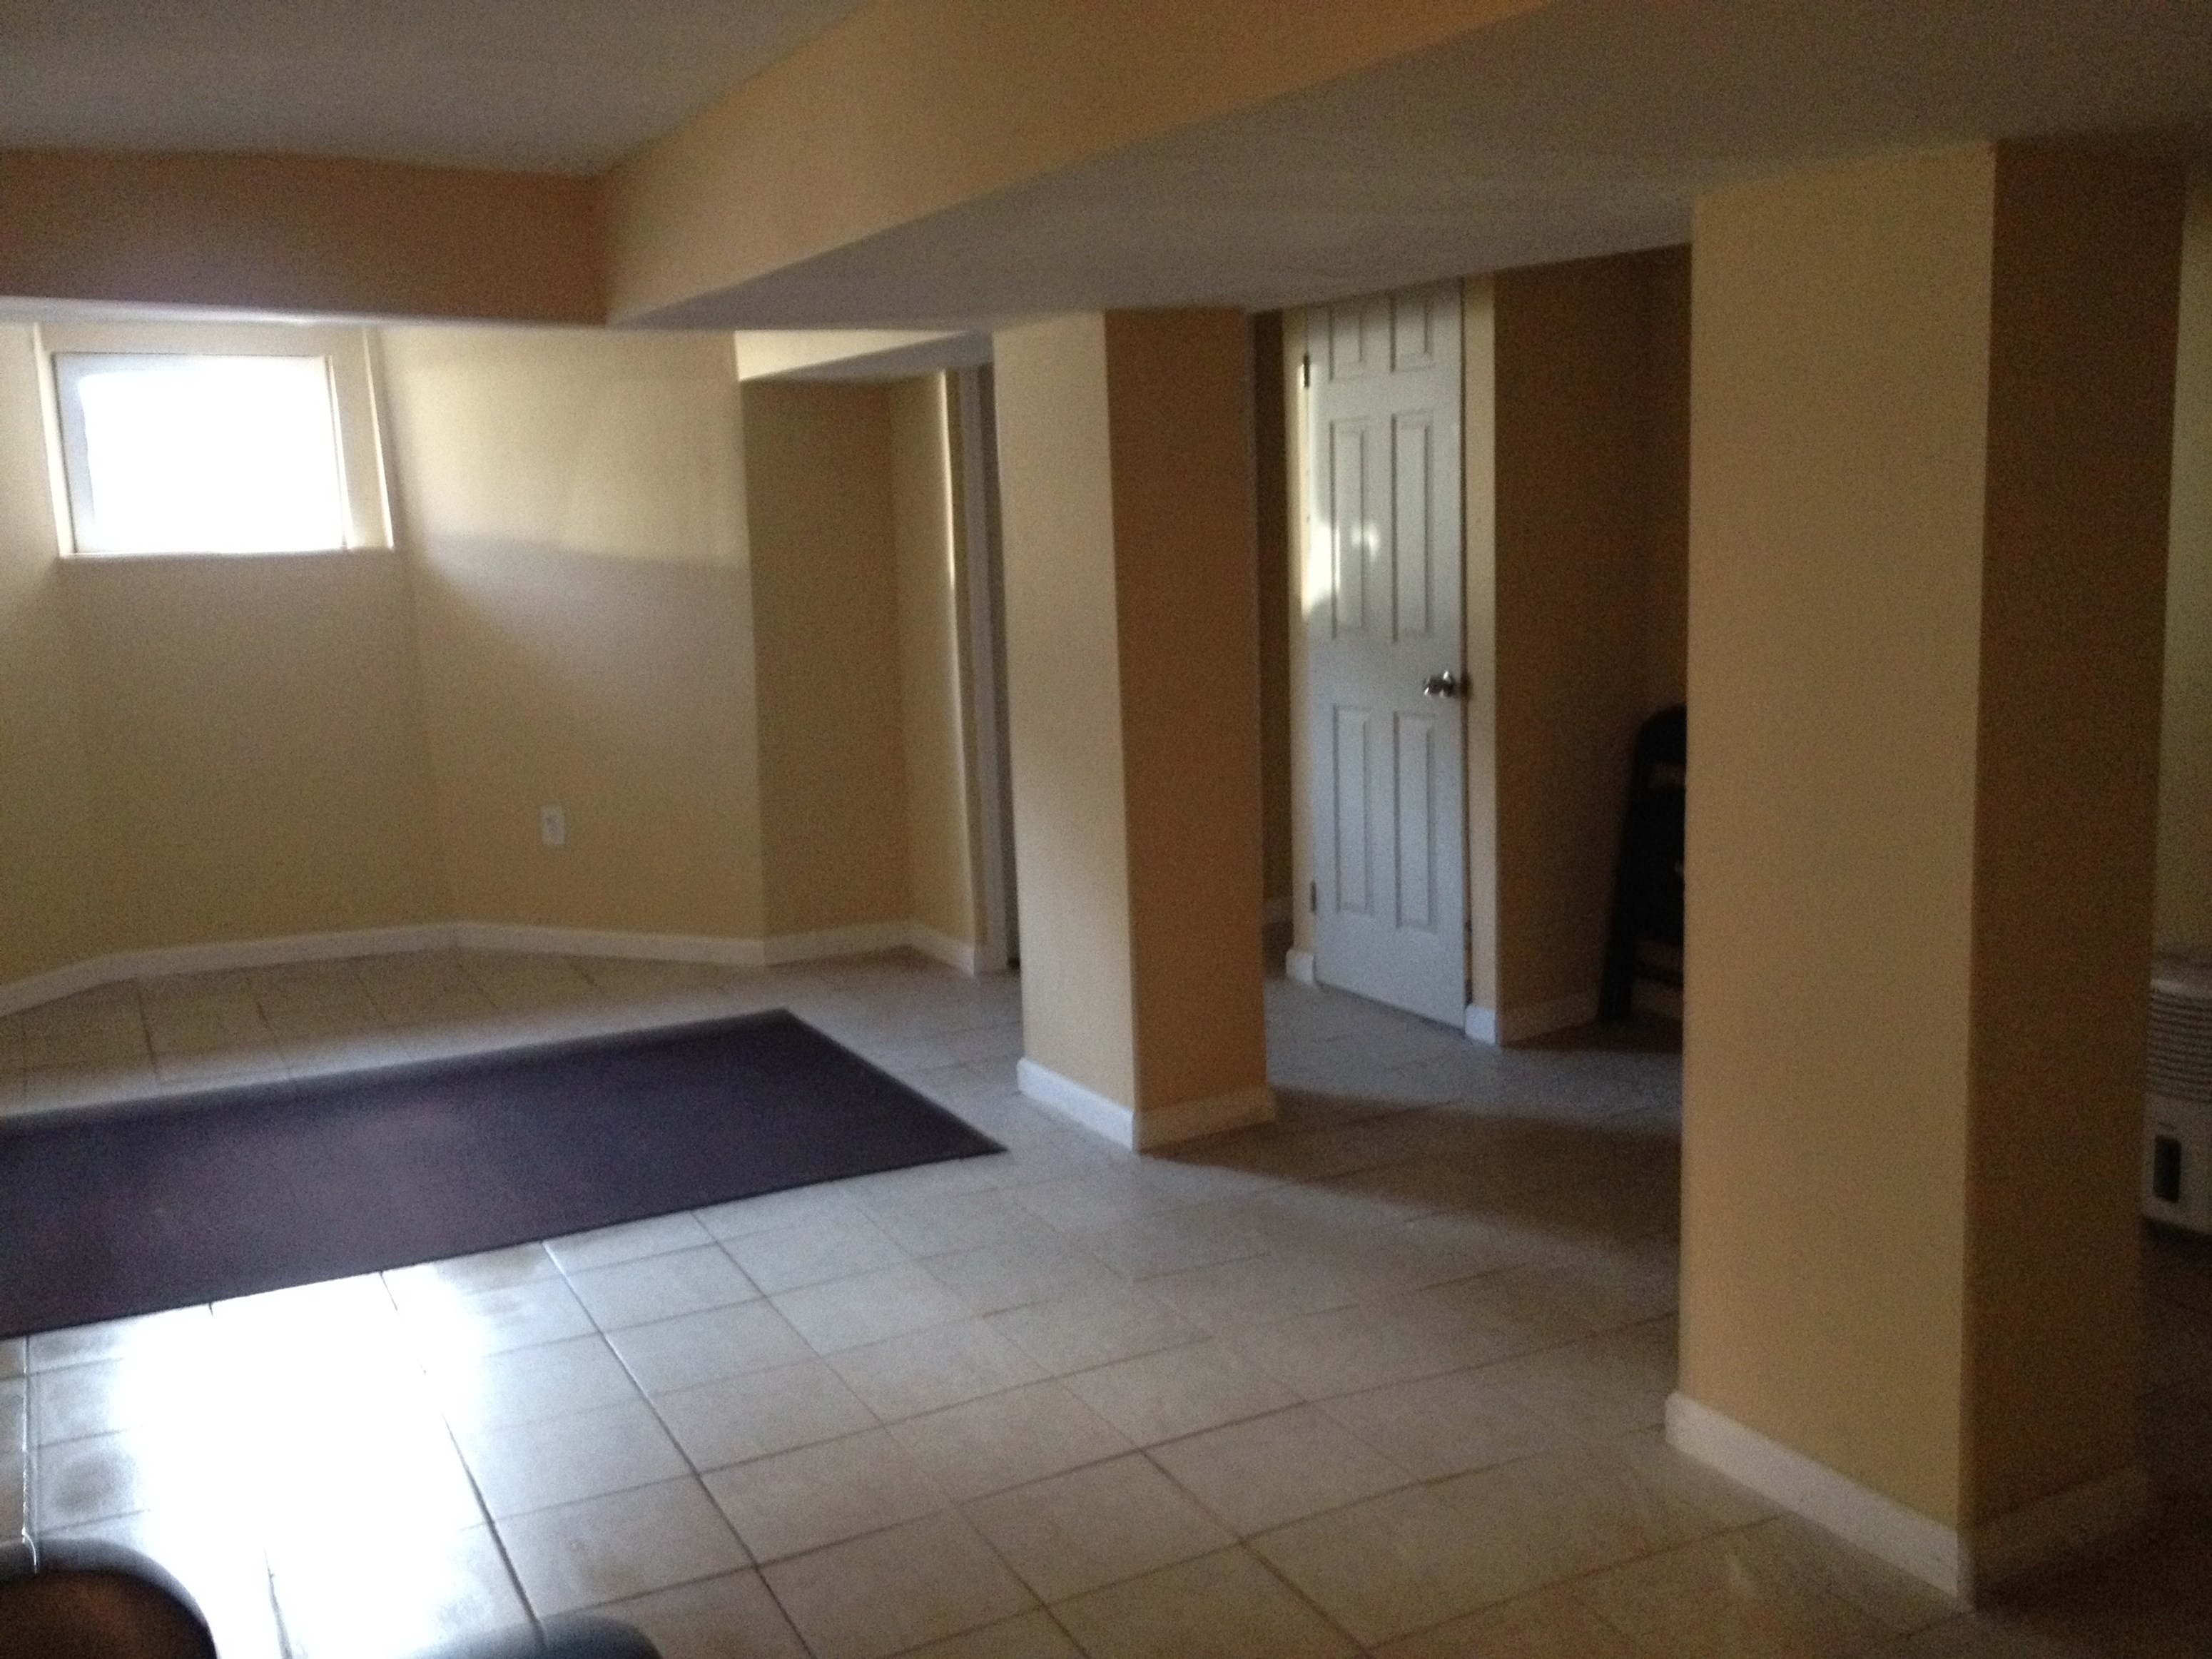 Apartments For Rent All Utilities Included Inland Empire